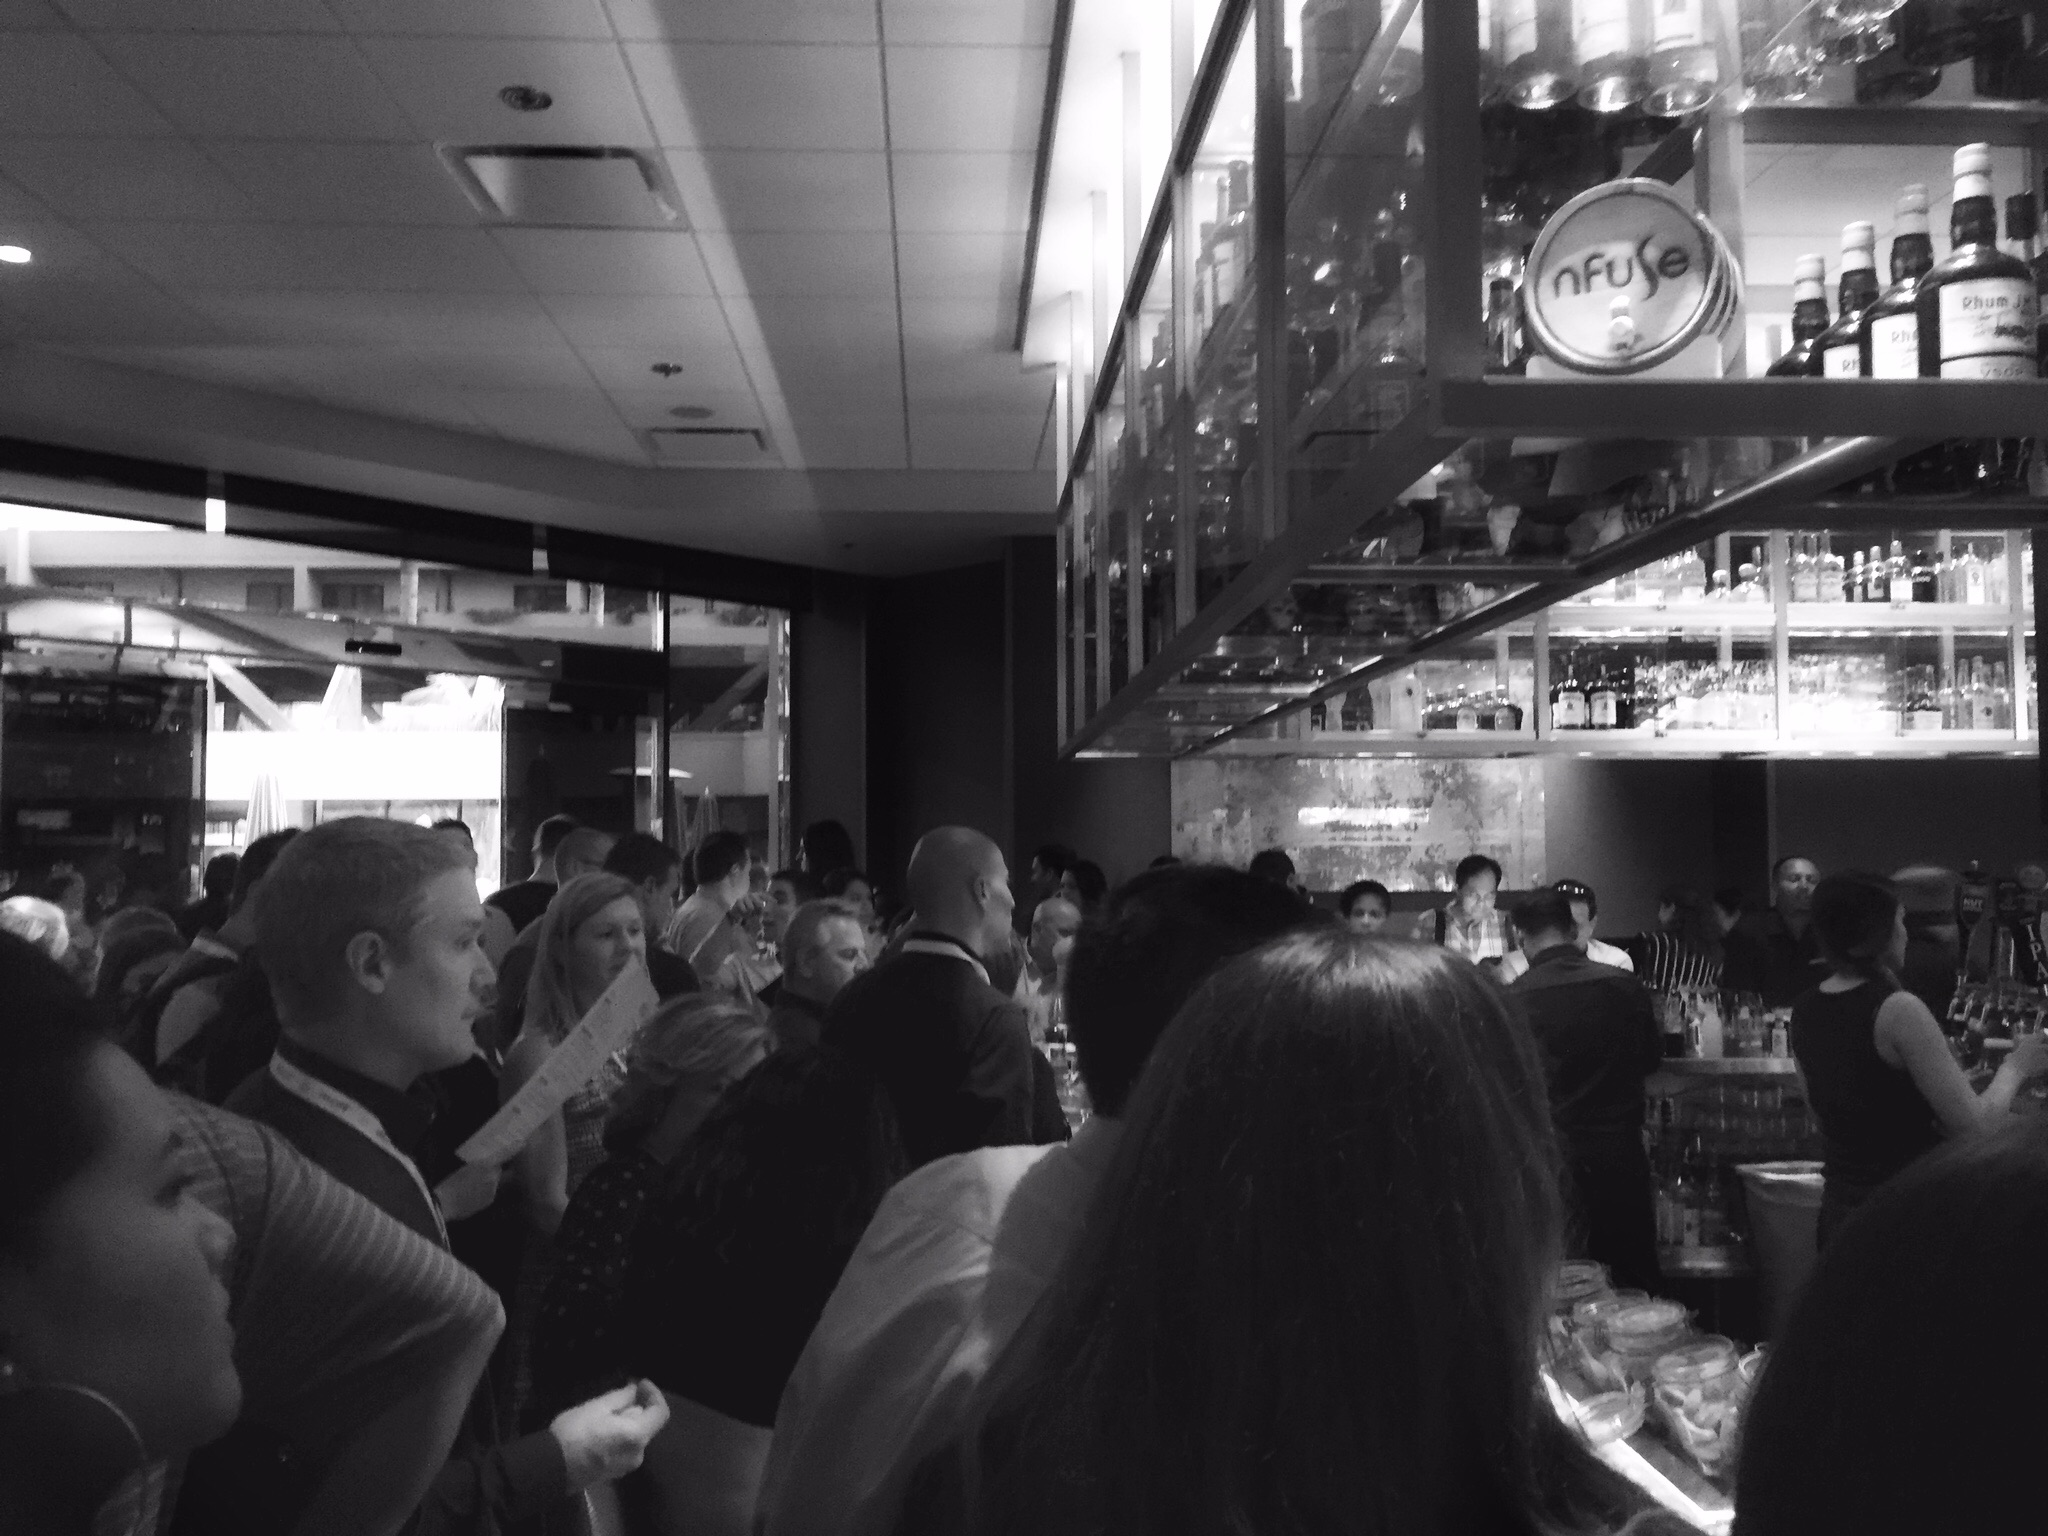 Happy hour was busy. PTs were definitely taking advantage of the day off from the clinic.  Everywhere we looked people were networking and meeting old friends. This,in my opinion, is where our profession gets inspired to get better.